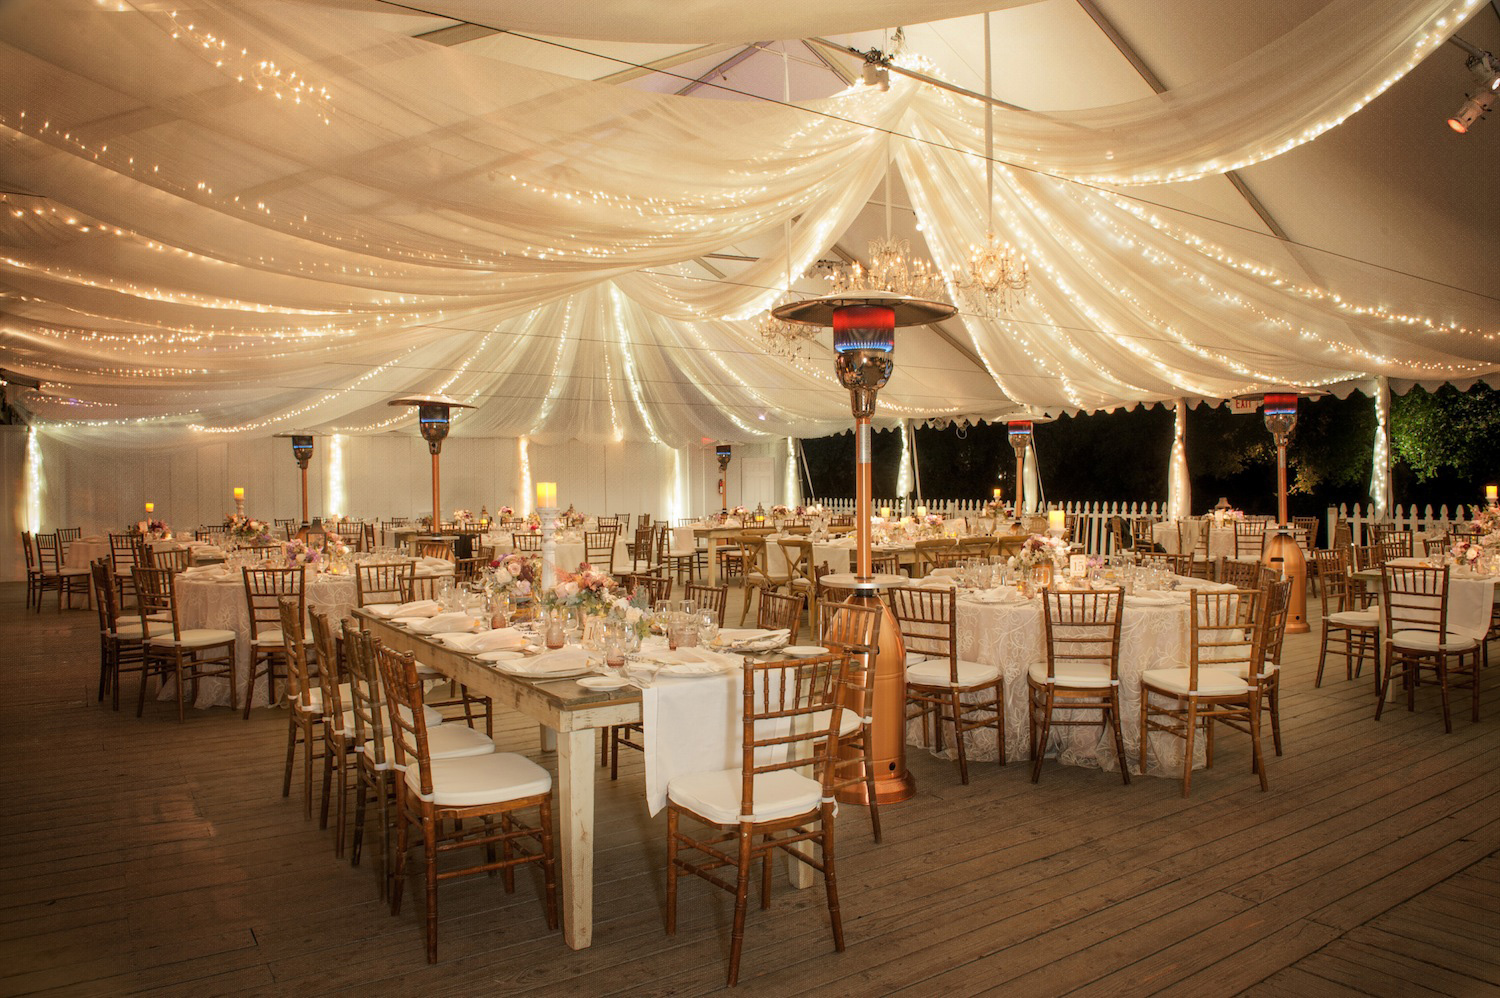 Wedding Reception Ideas: Transforming Décor with String Lights ...